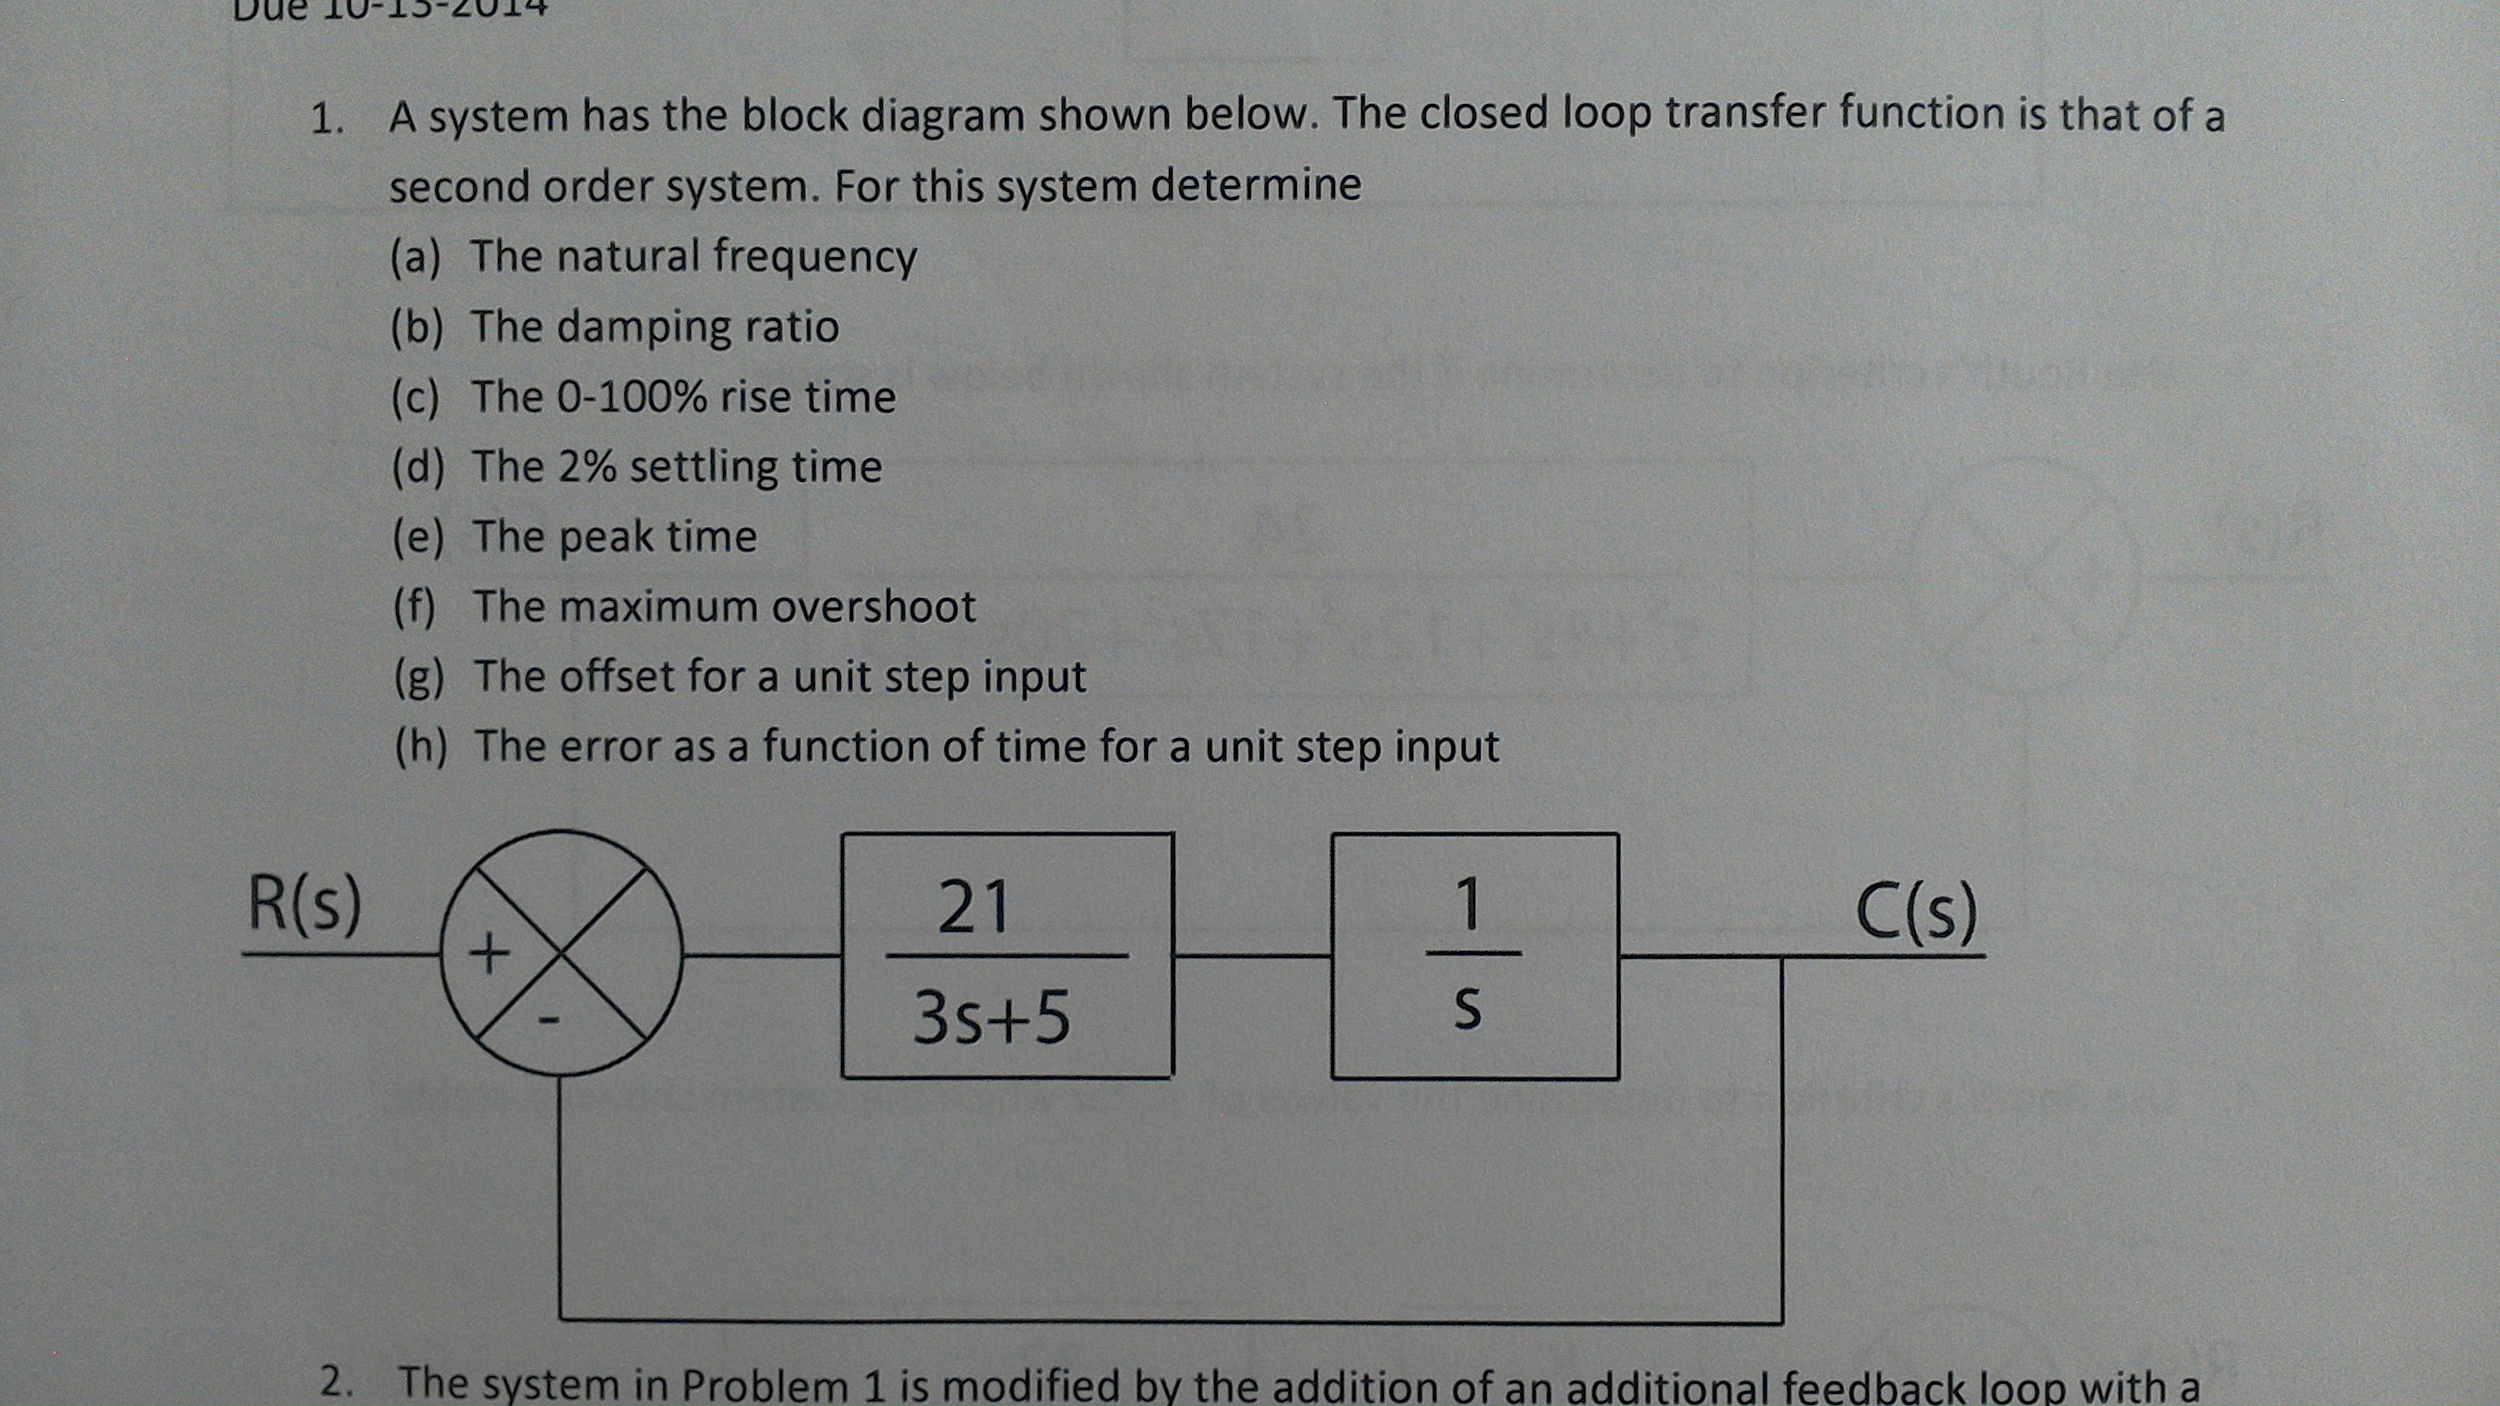 Mechanical engineering archive october 12 2014 chegg a system has the block diagram shown below the closed loop transfer function is that of a second order system for this system determine the natural nvjuhfo Image collections